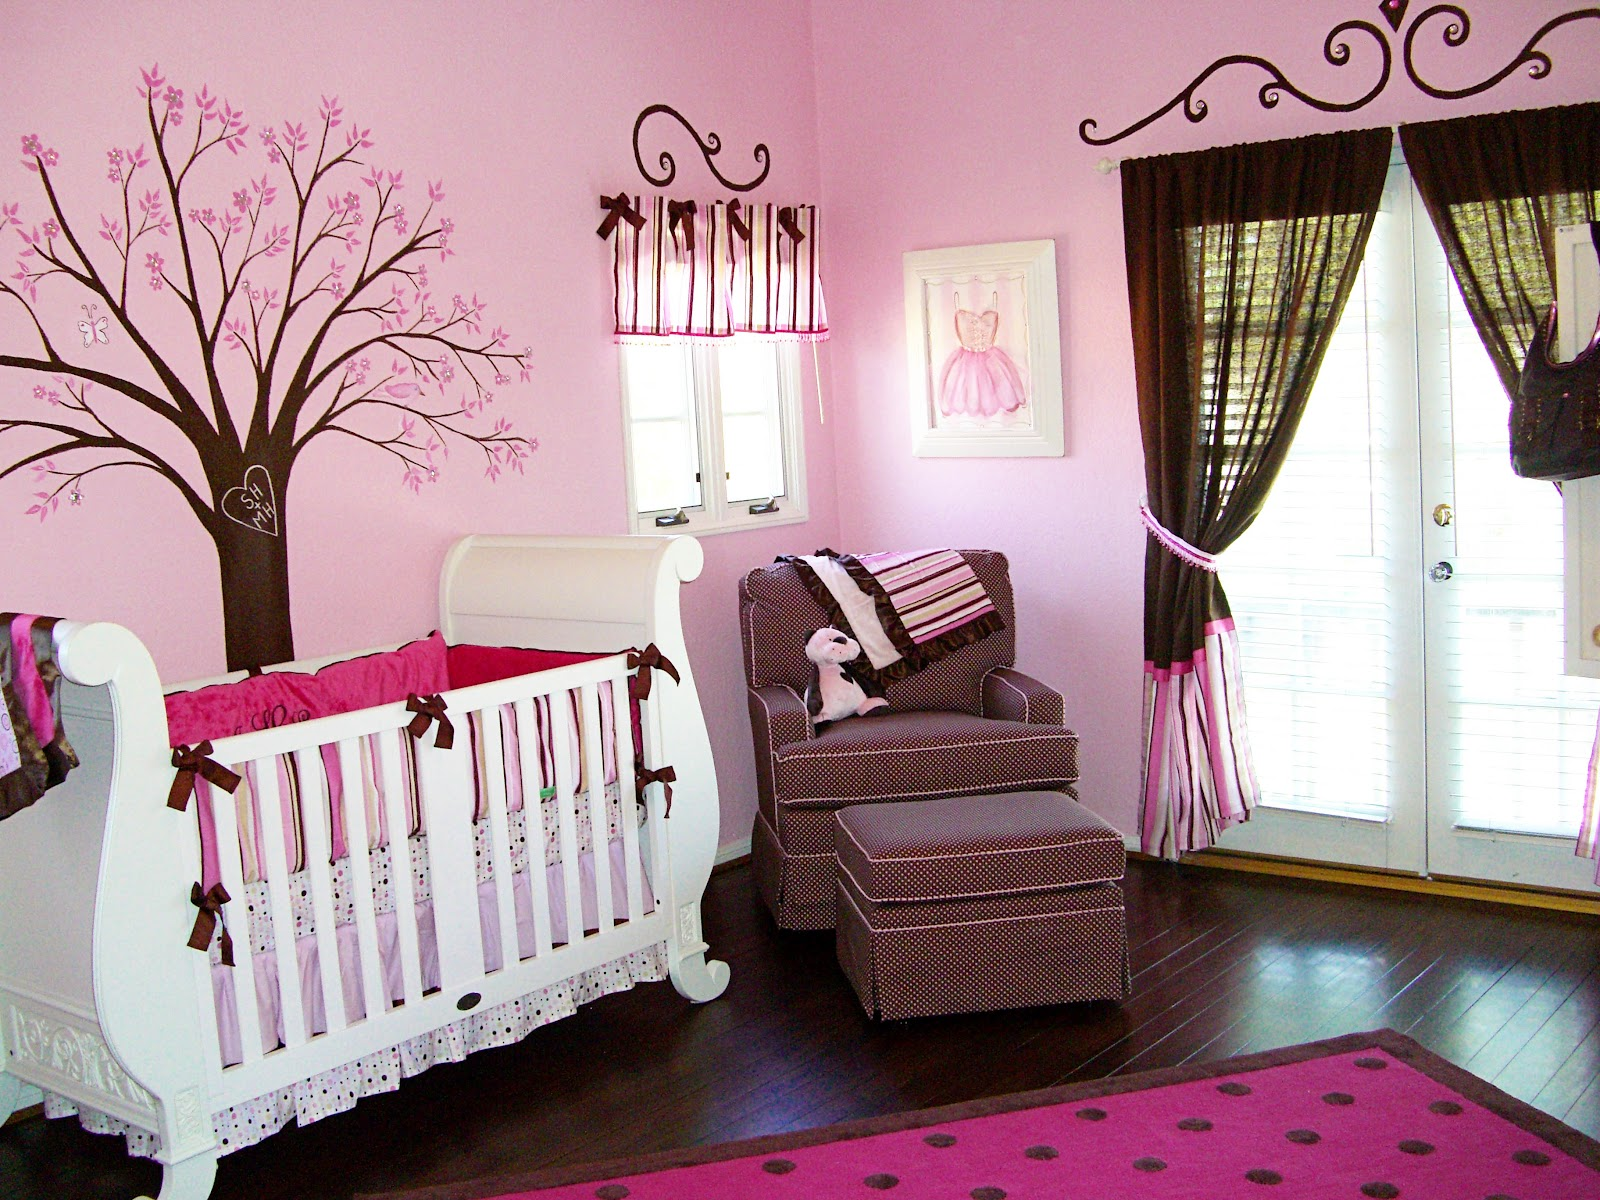 Full pink color girl baby room ideas decorate - Baby girl bedroom ideas ...